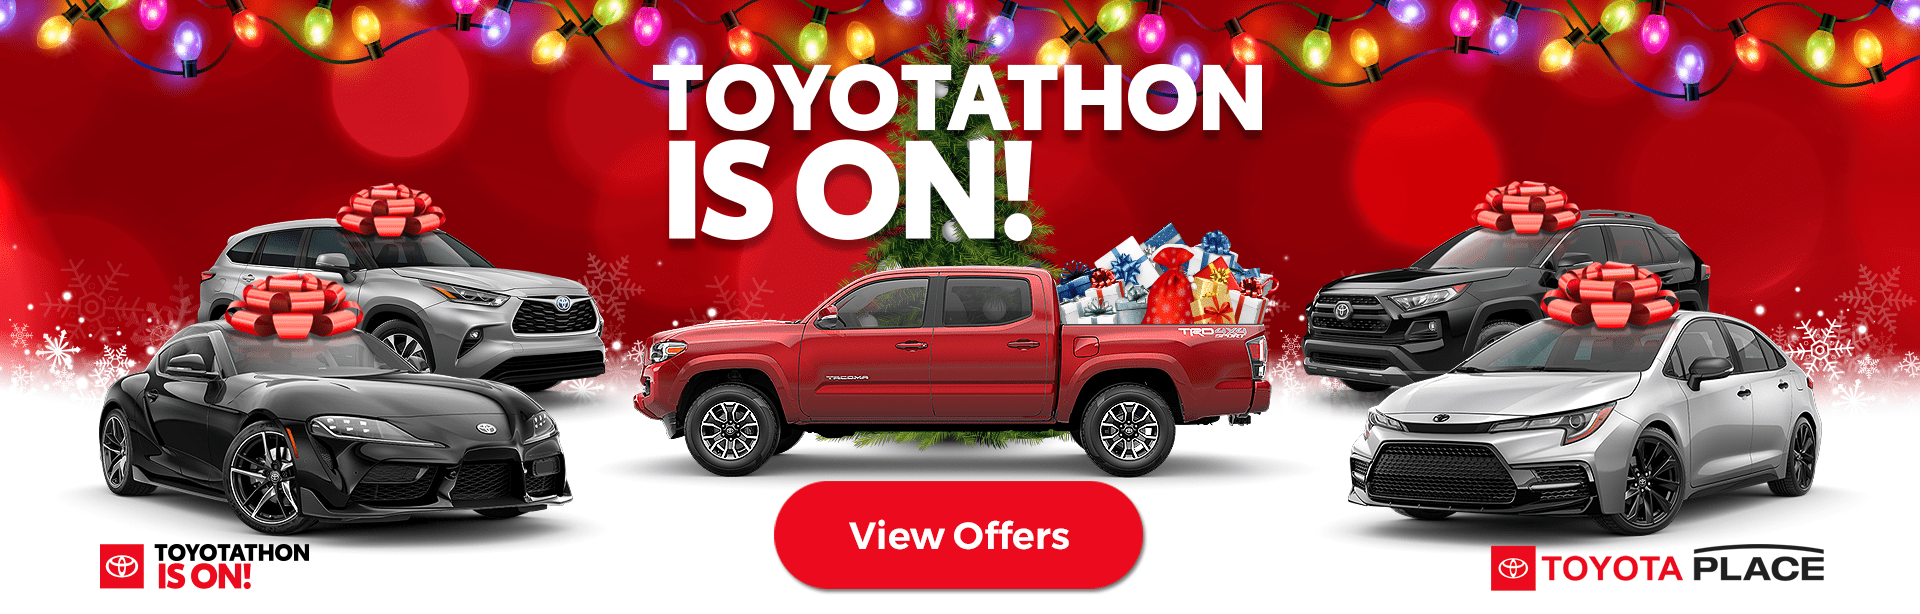 2020_December_Toyotathon_Sales_Event_Offers